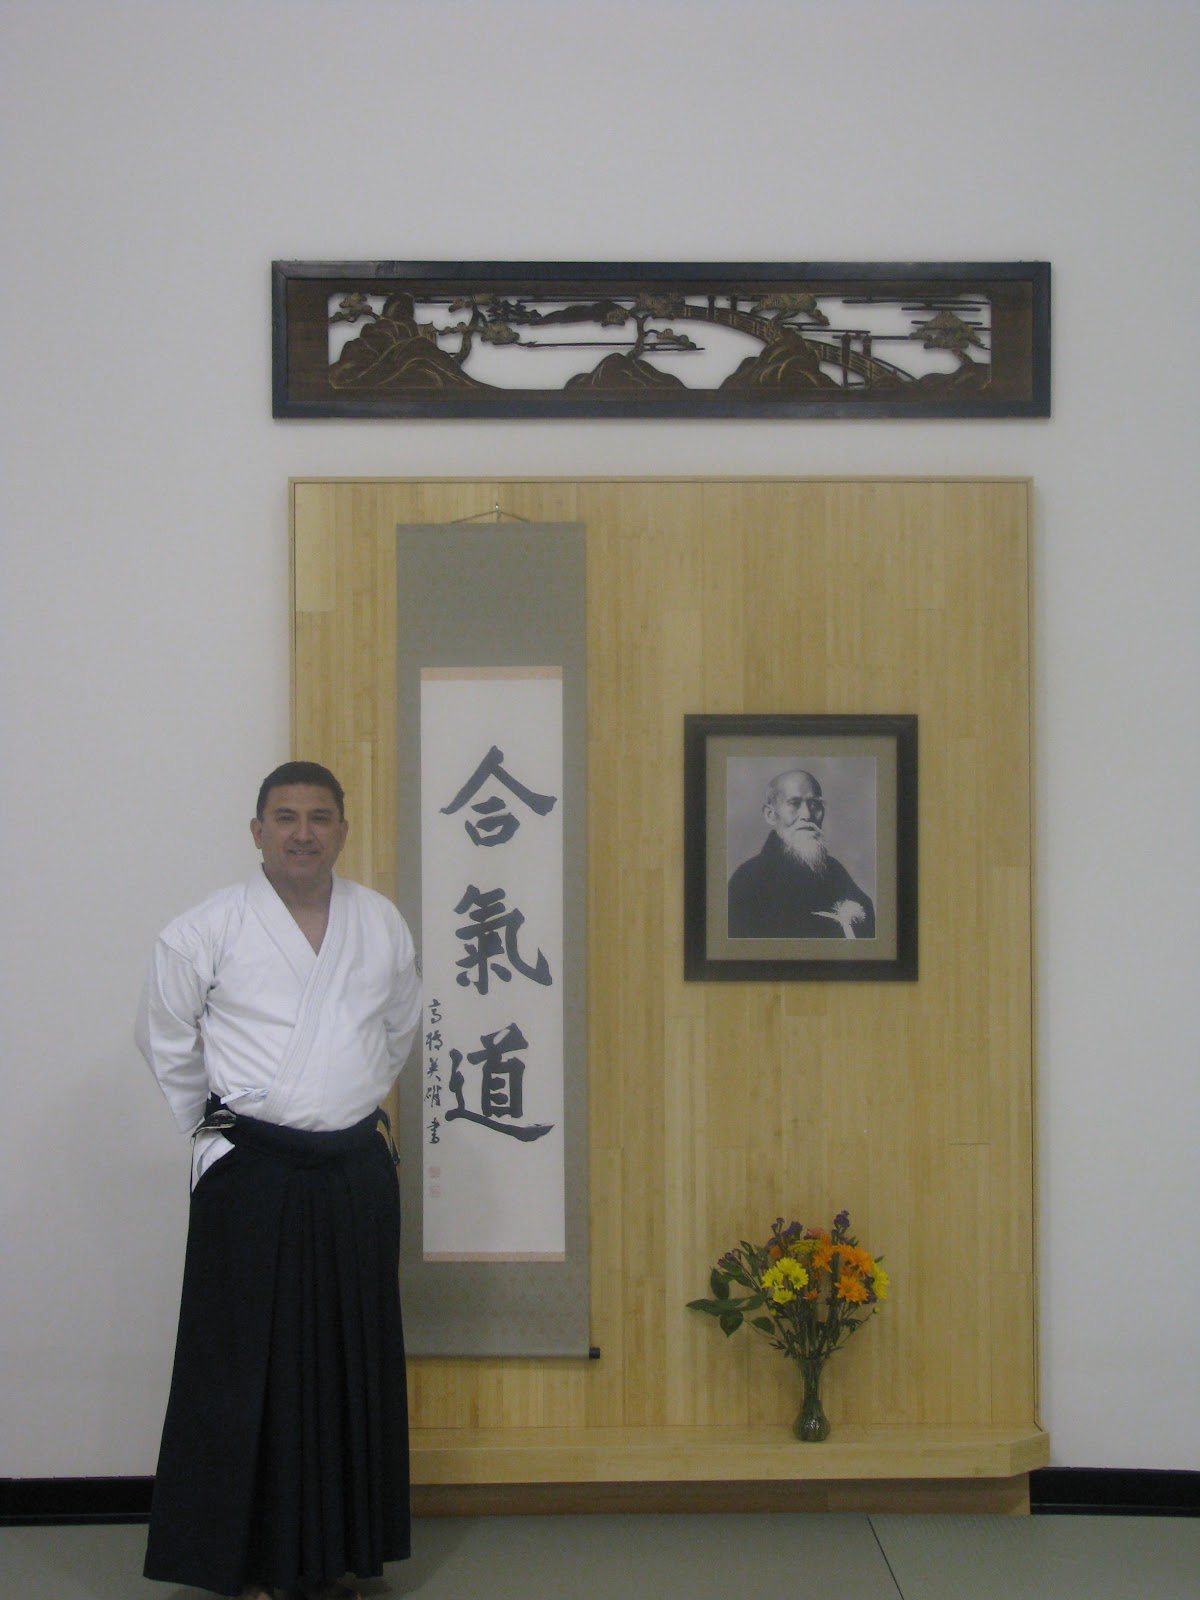 Hiroshi Ikeda 7th Dan - Midest Aikido Bridge Seminar, hosted by Aikido Shimboku Dojo / Lisa Tomoleoni 5th Dan Dojo Cho